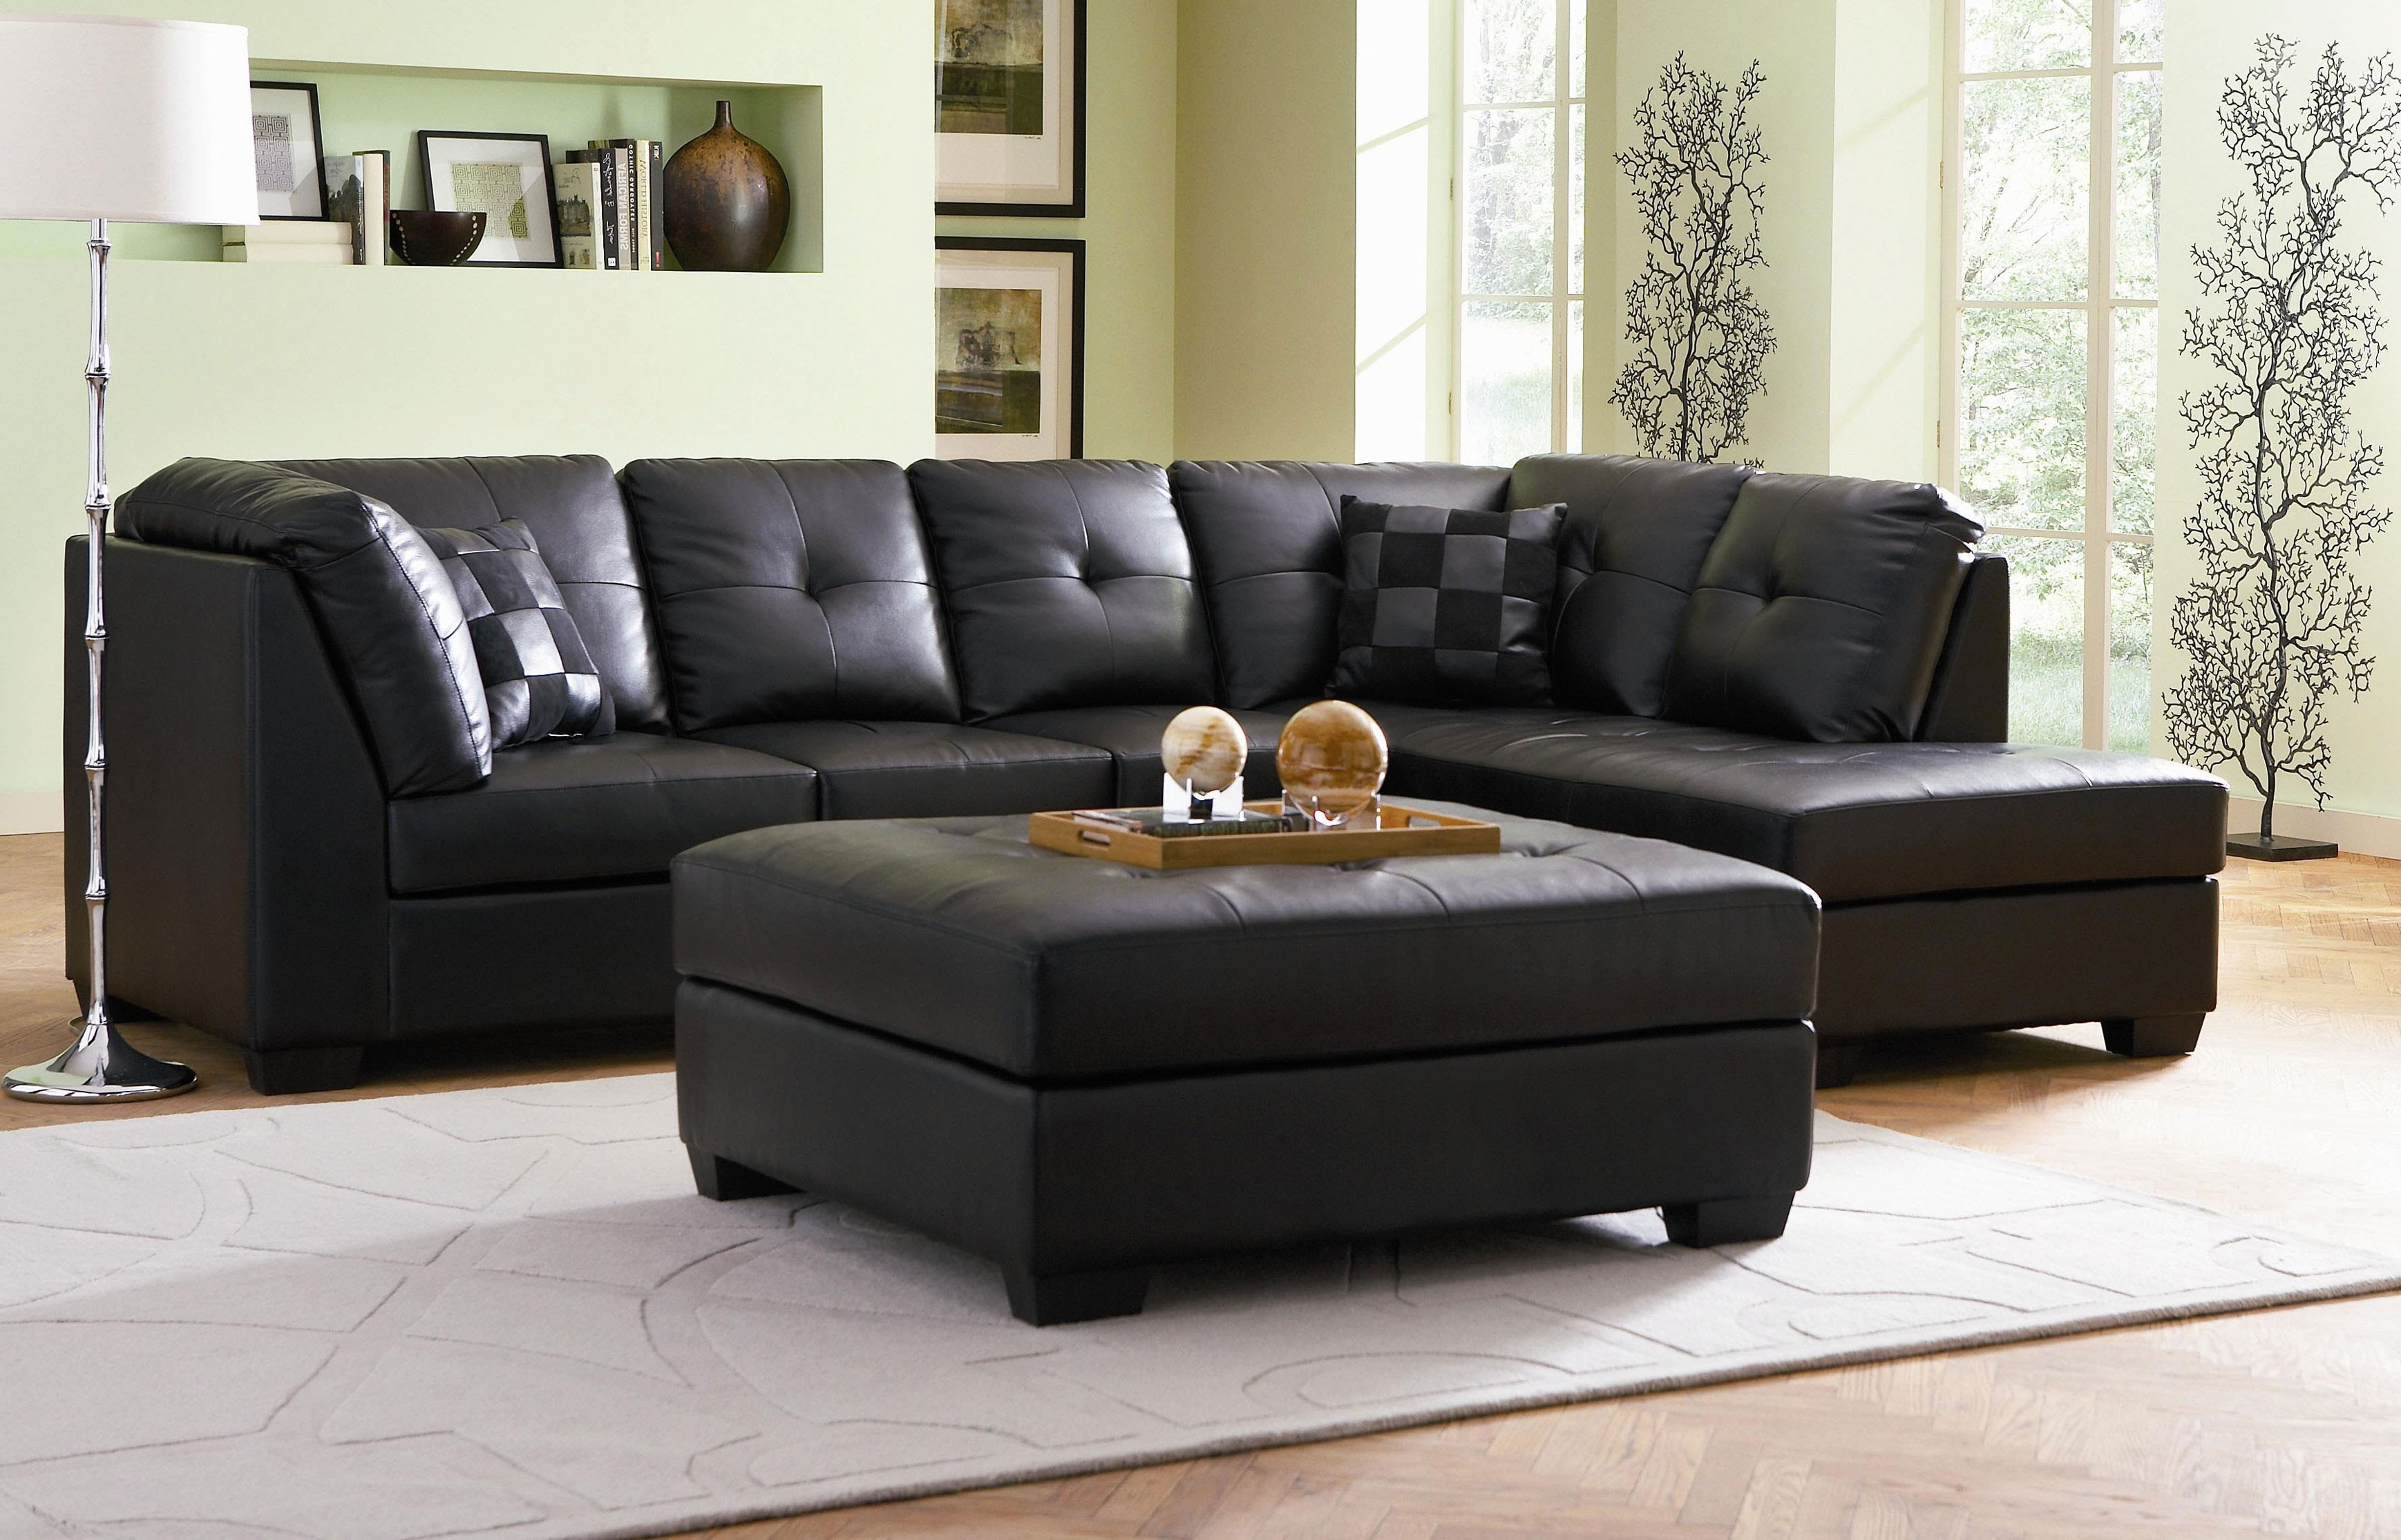 Trendy Murfreesboro Tn Sectional Sofas Throughout Sectional Sofa: Top Recommended Inexpensive Sectional Sofa Best (View 3 of 15)